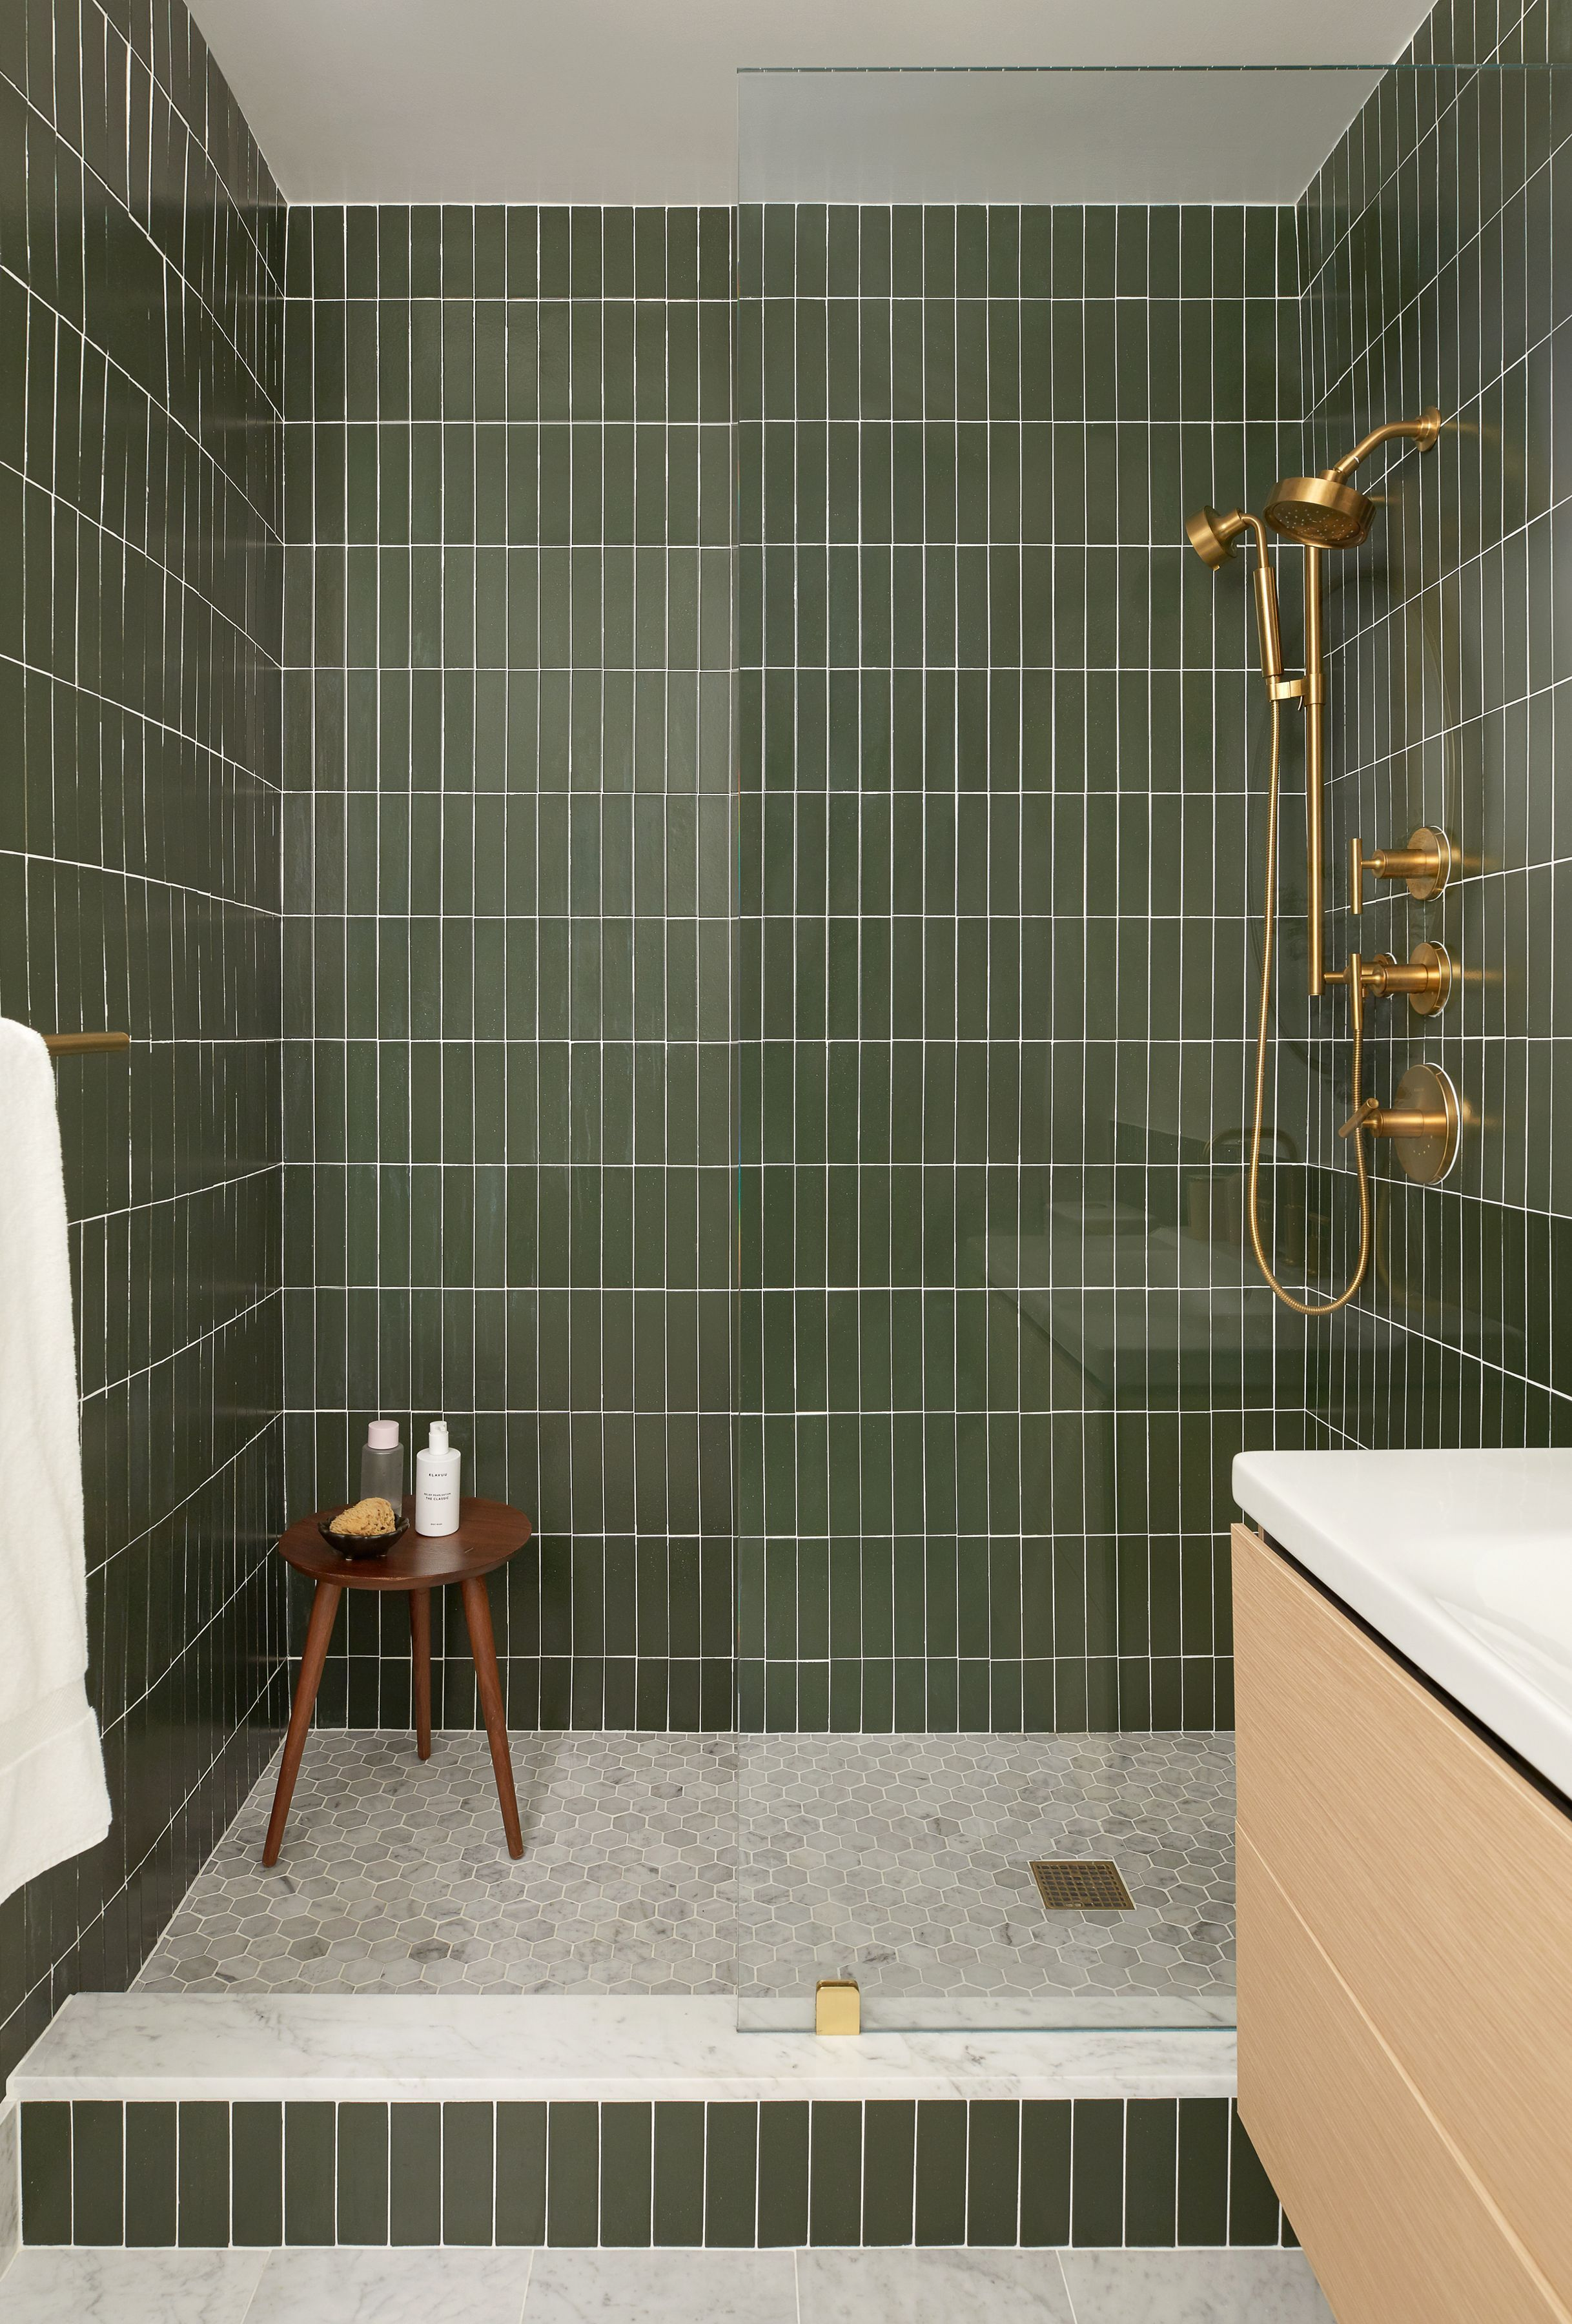 These Incredible Shower Ideas Will Motivate You To Make Changes That Will Certainly Include Wort Green Subway Tile Green Bathroom Bathroom Interior Design